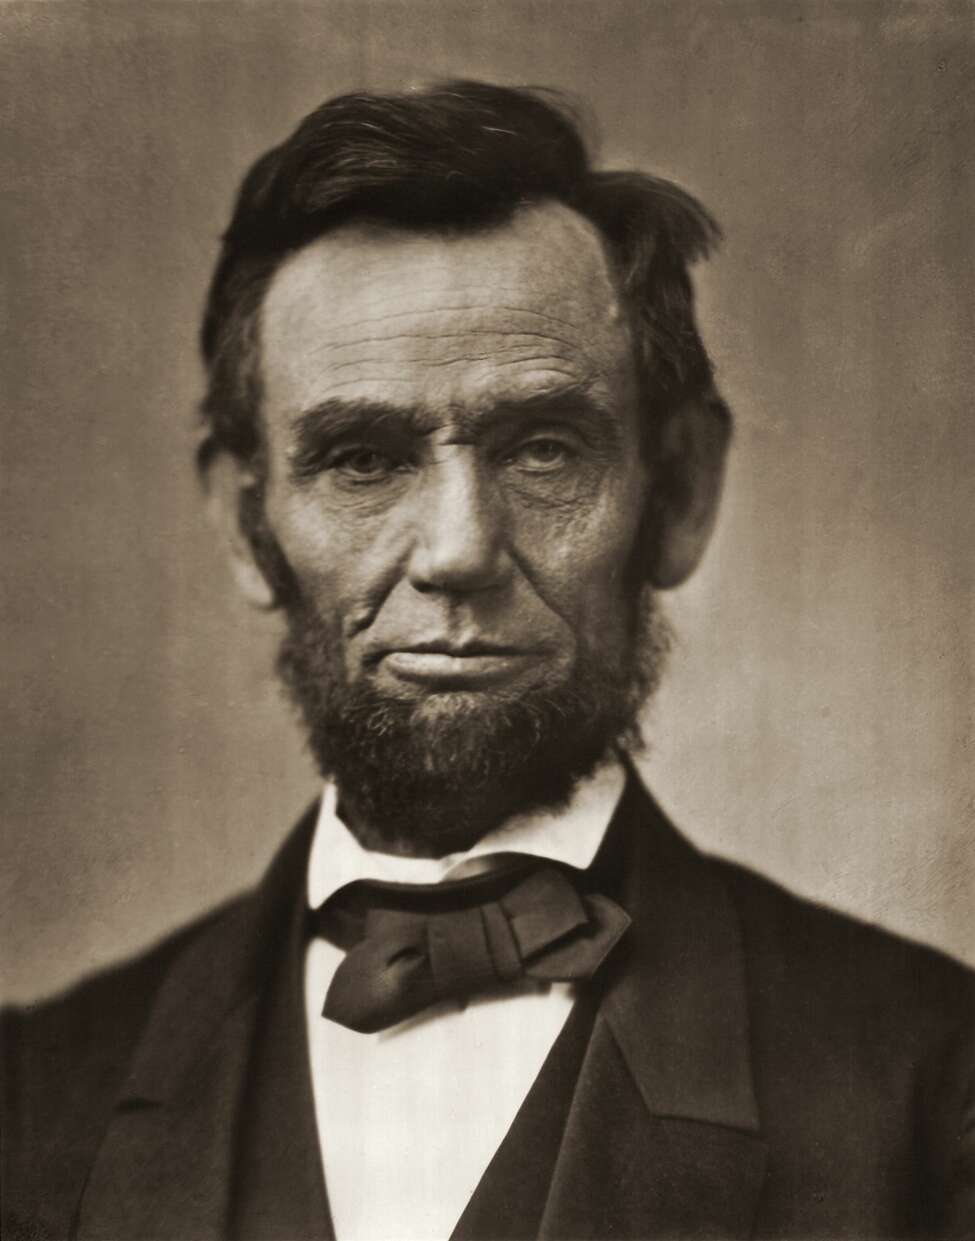 On April 15, 1865: Abraham Lincoln, the 16th President of the United States, was assassinated.